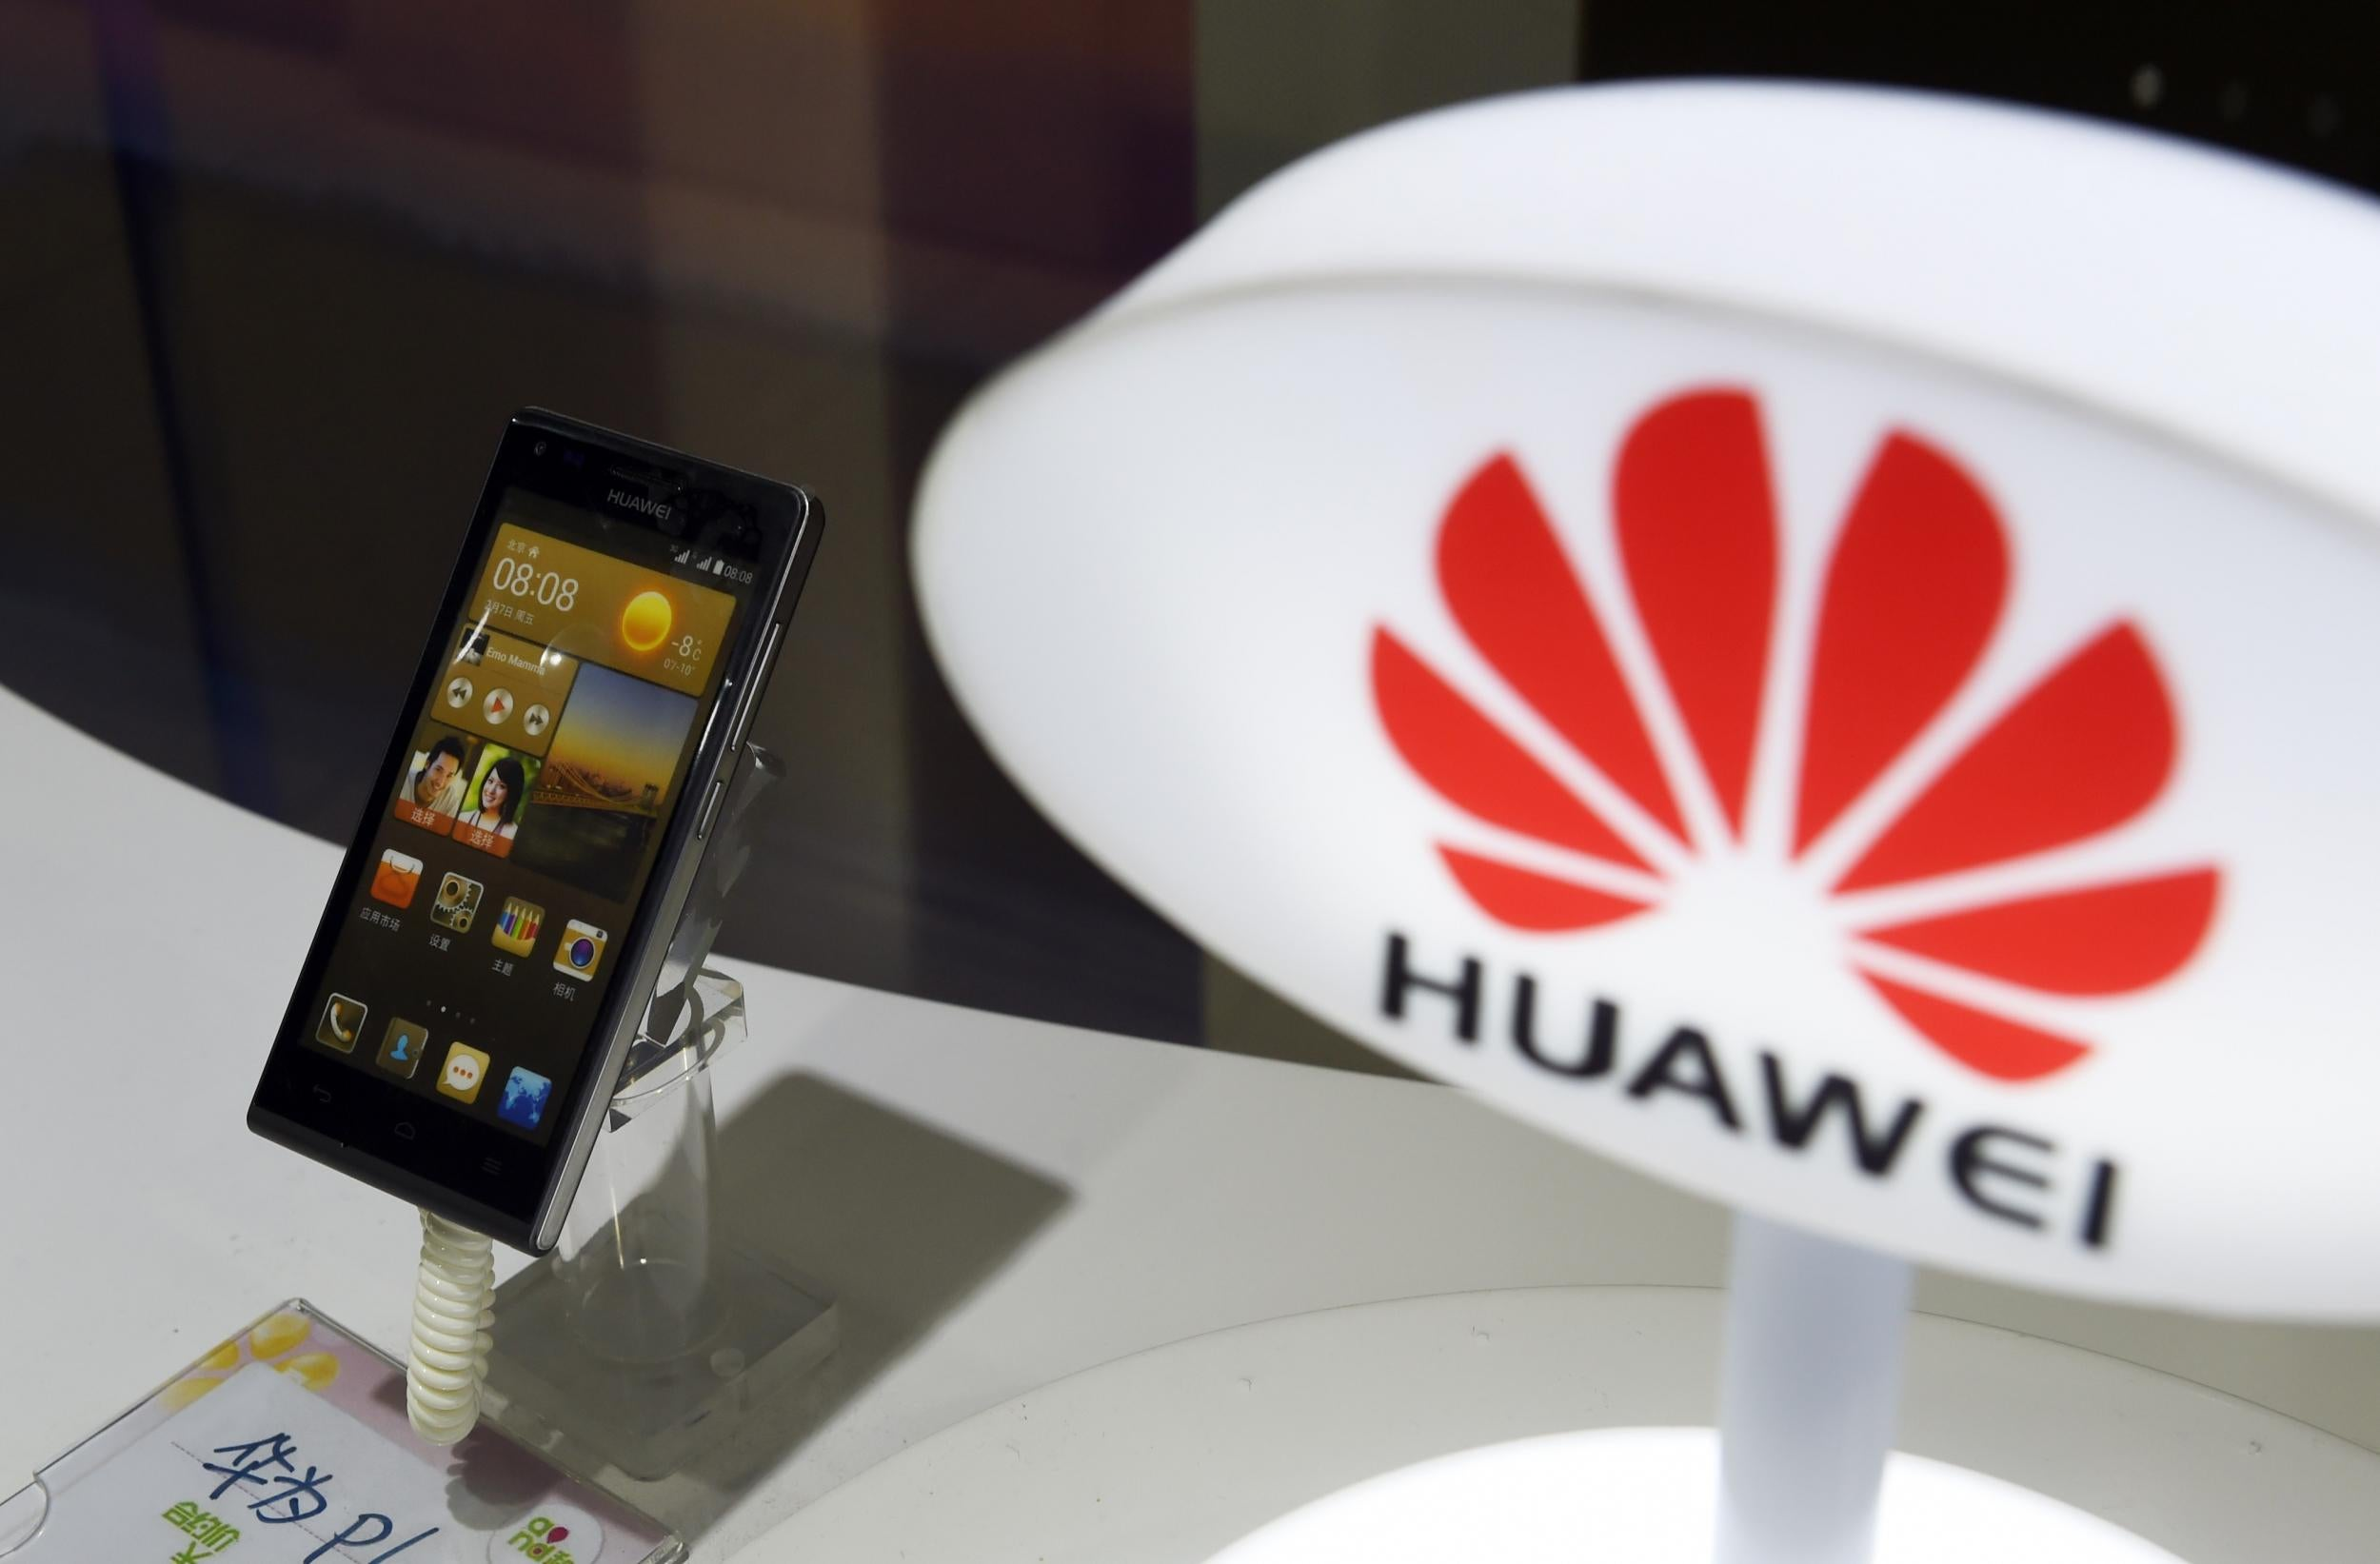 Huawei's new fast-charging battery prototype can be charged